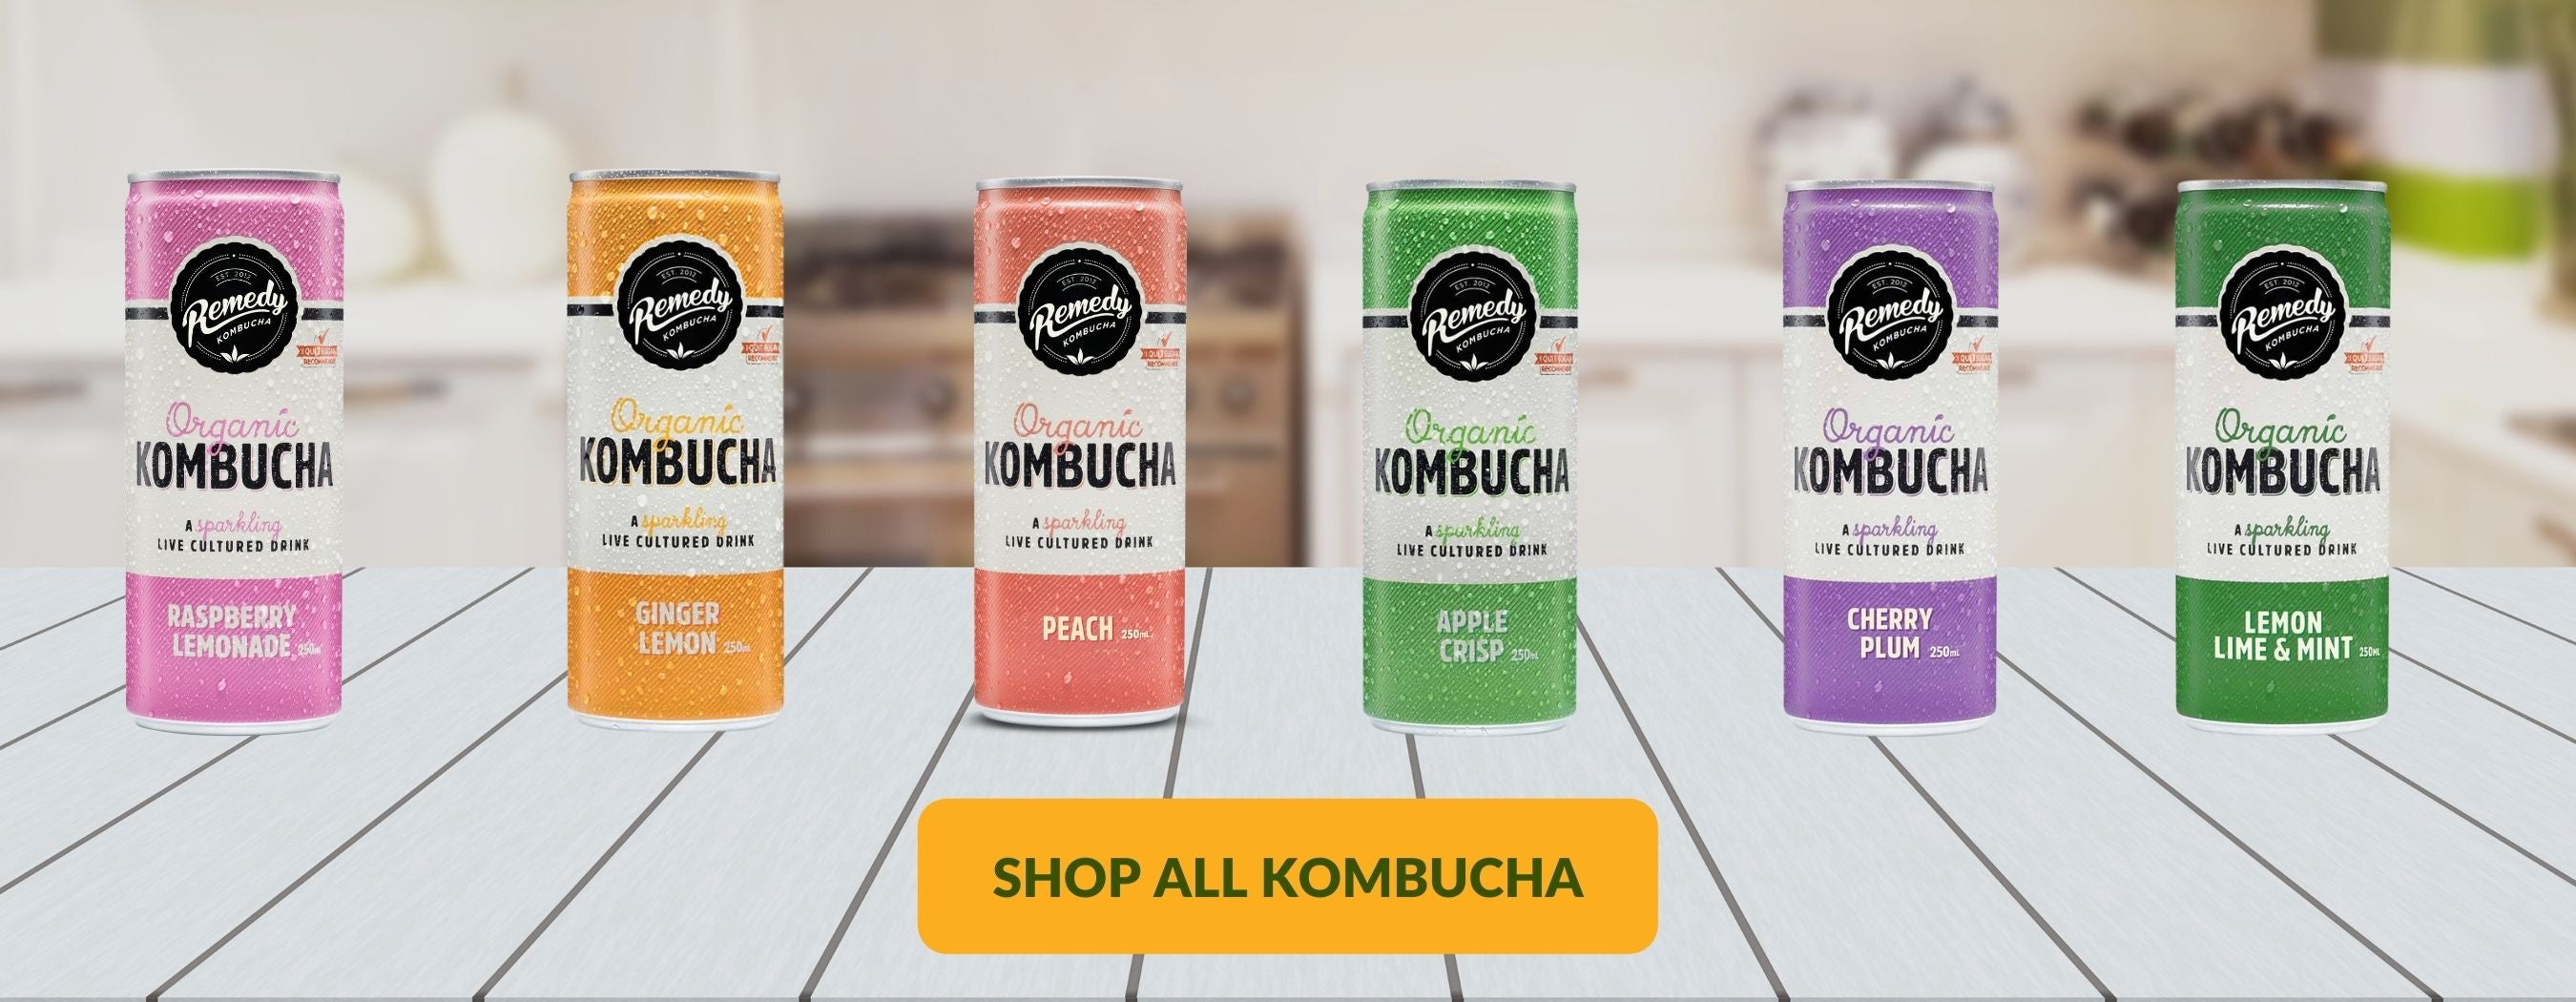 shop remedy kombucha at best prices online in philippines